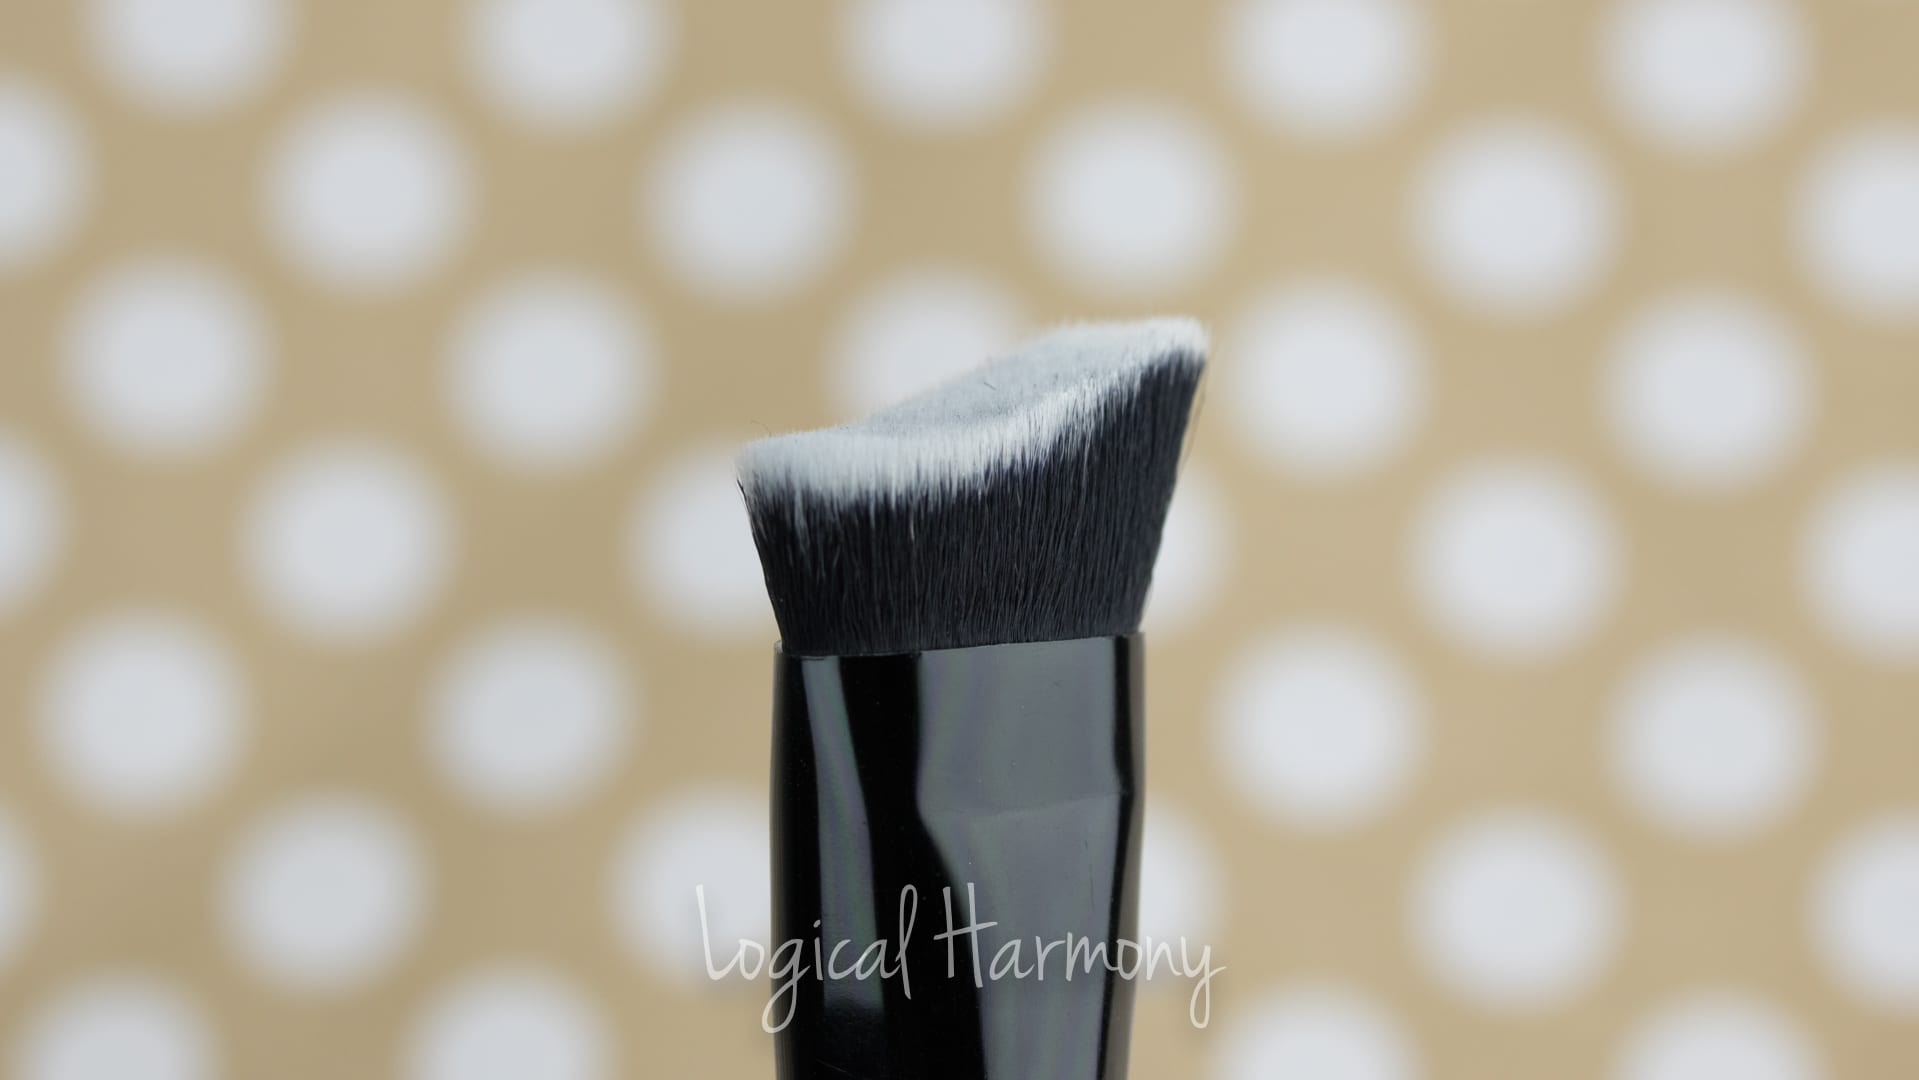 ELF Sculpting Face Brush Review - Logical Harmony